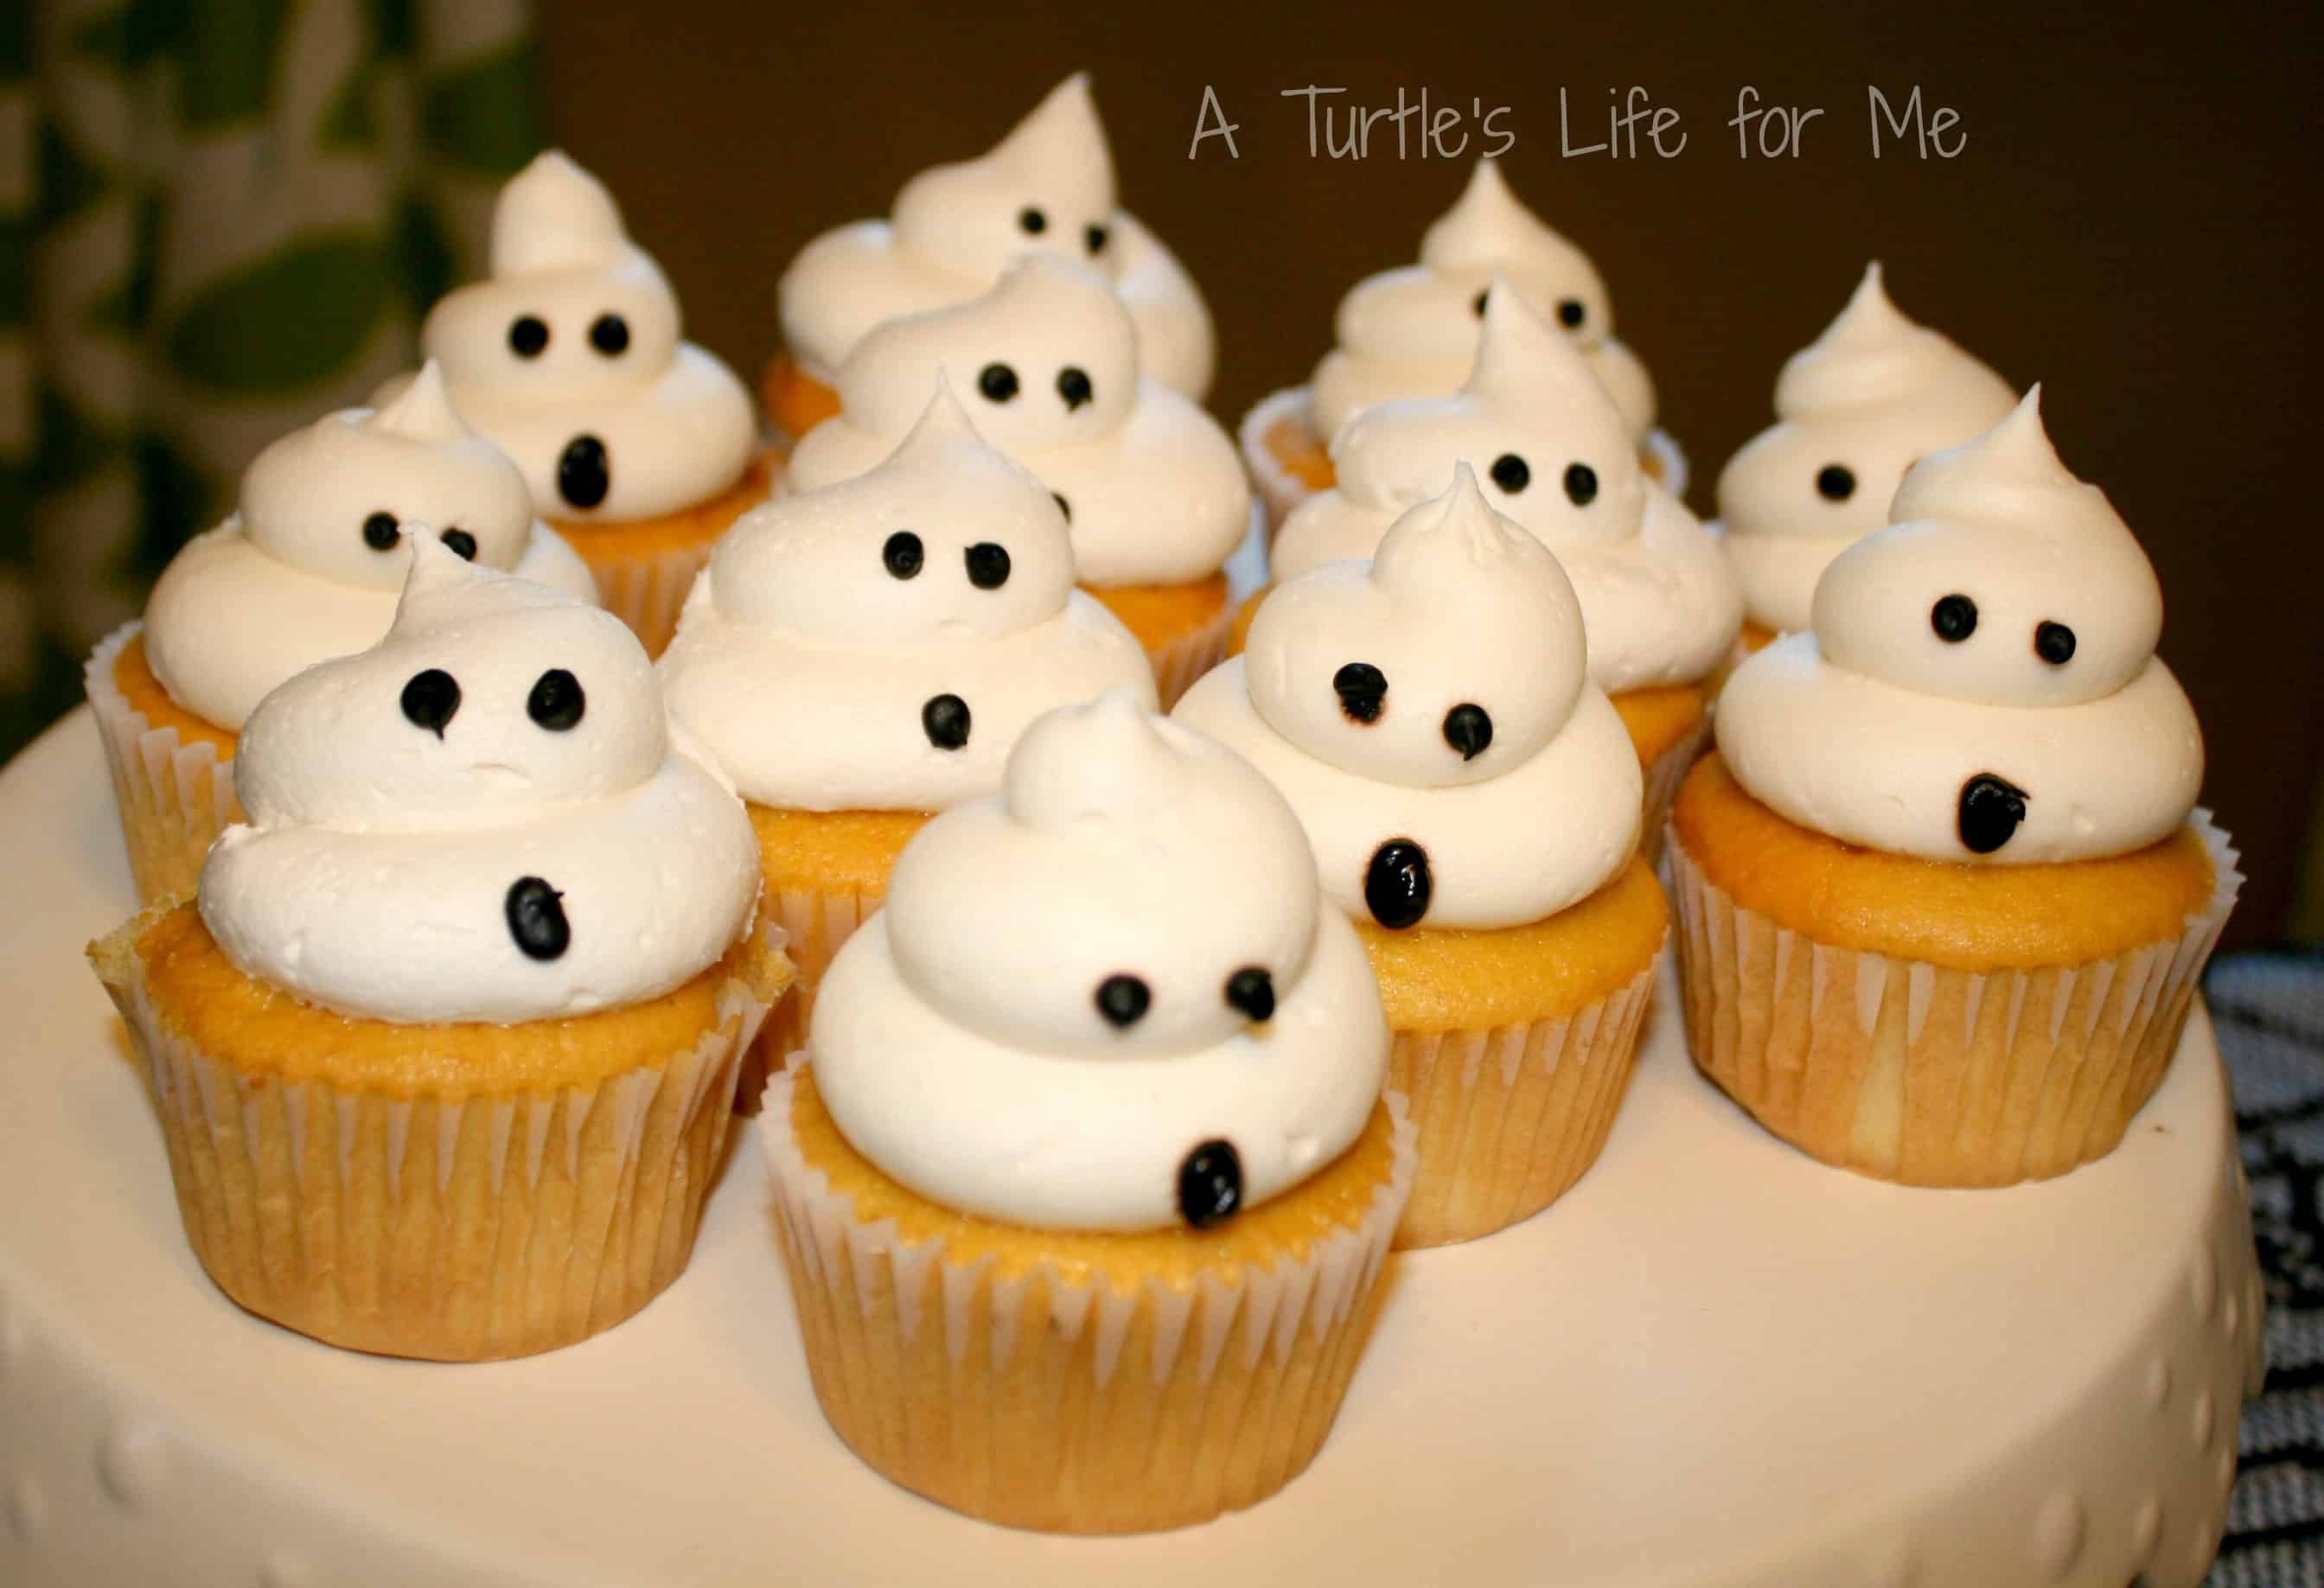 Easiest Kids' Halloween Party Ever! - A Turtle's Life for Me